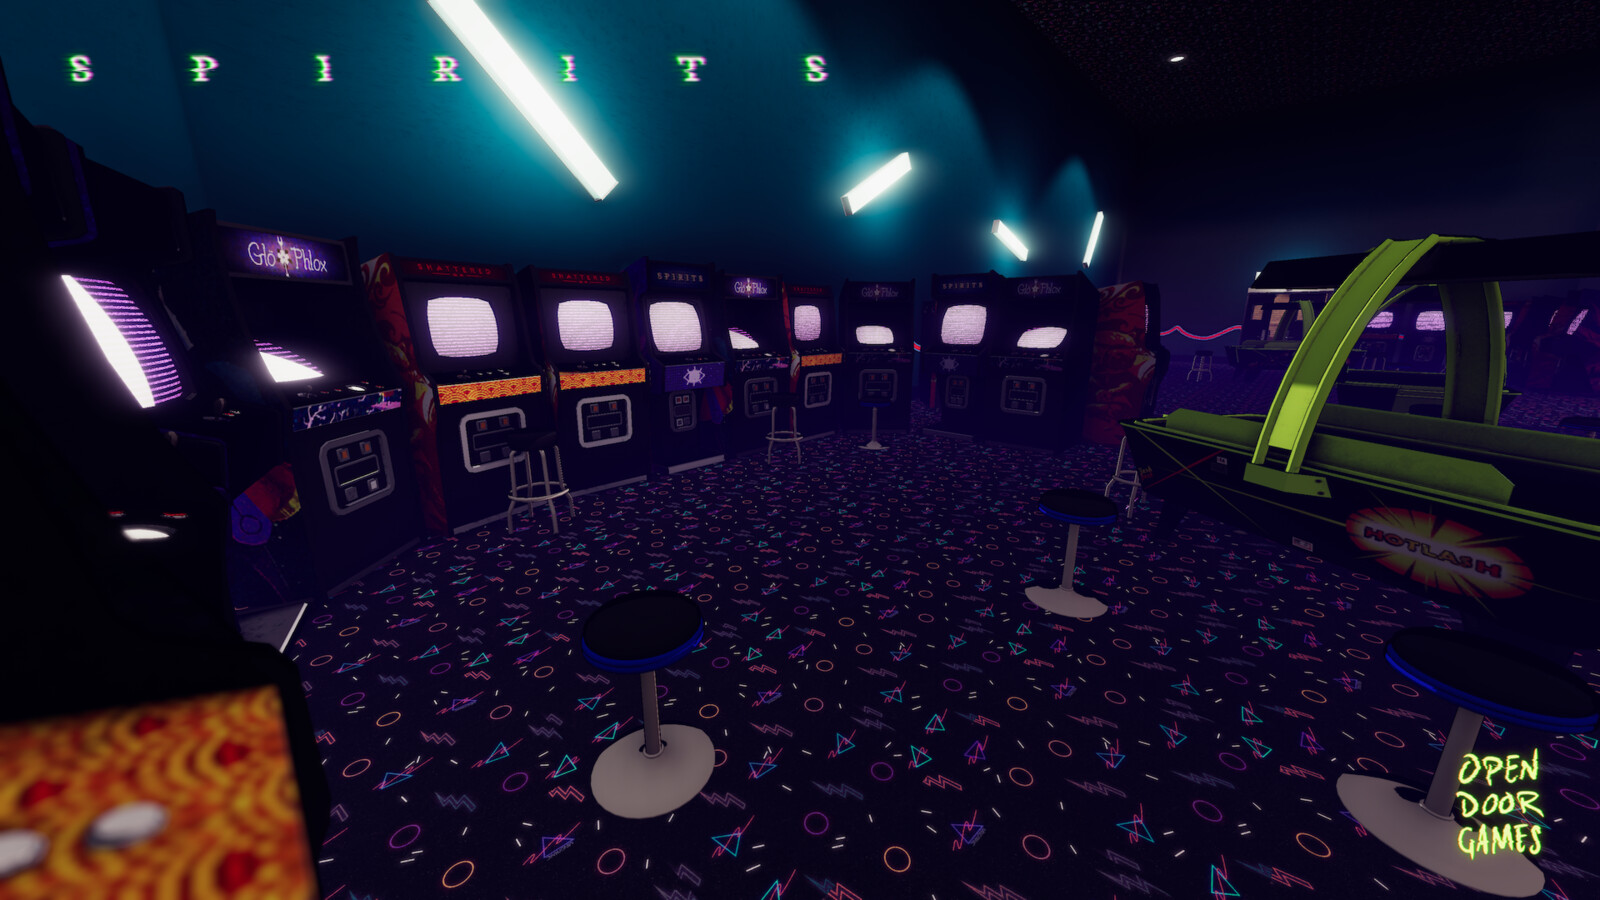 The lighting of an almost all black room can be a hurdle. I needed to add a lot of lights, and that gave me a great opportunity to add tot he chaotic and playful arcade feel.